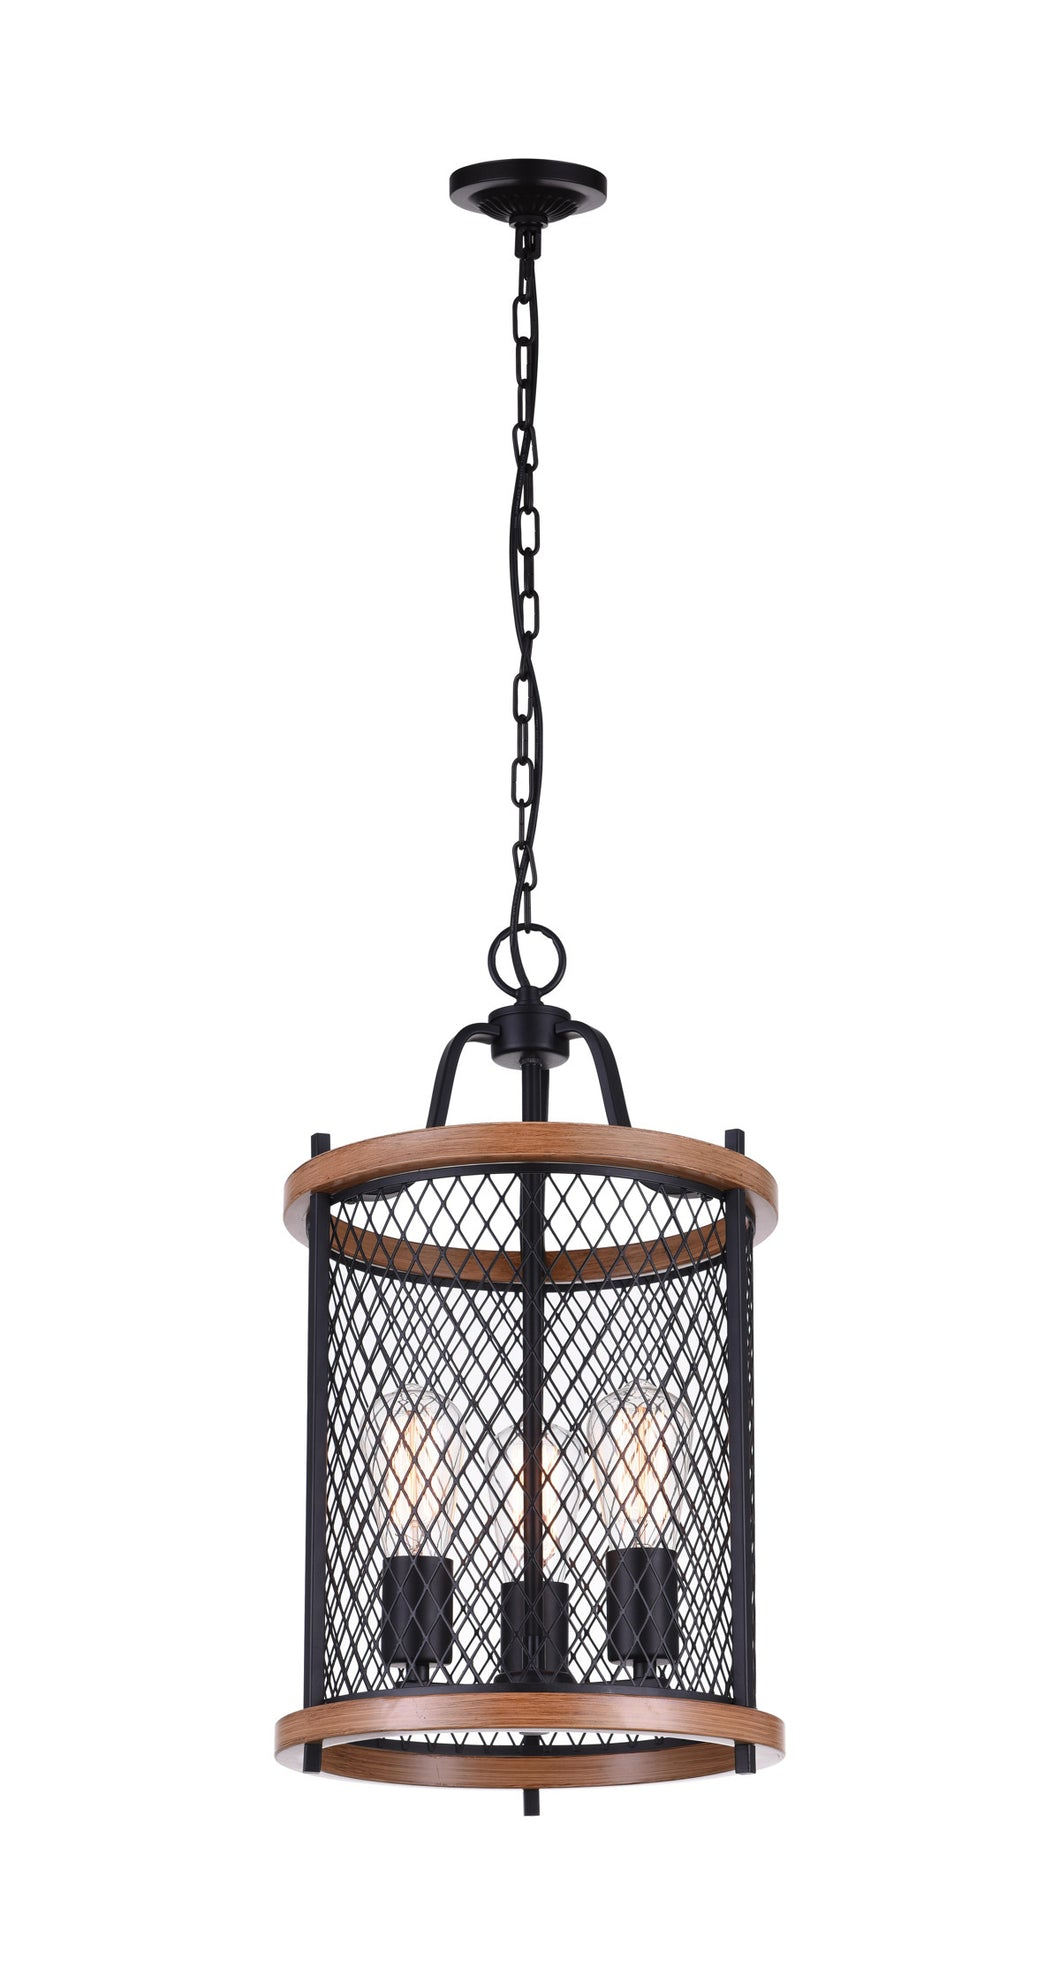 3 Light Drum Shade Mini Chandelier with Black finish